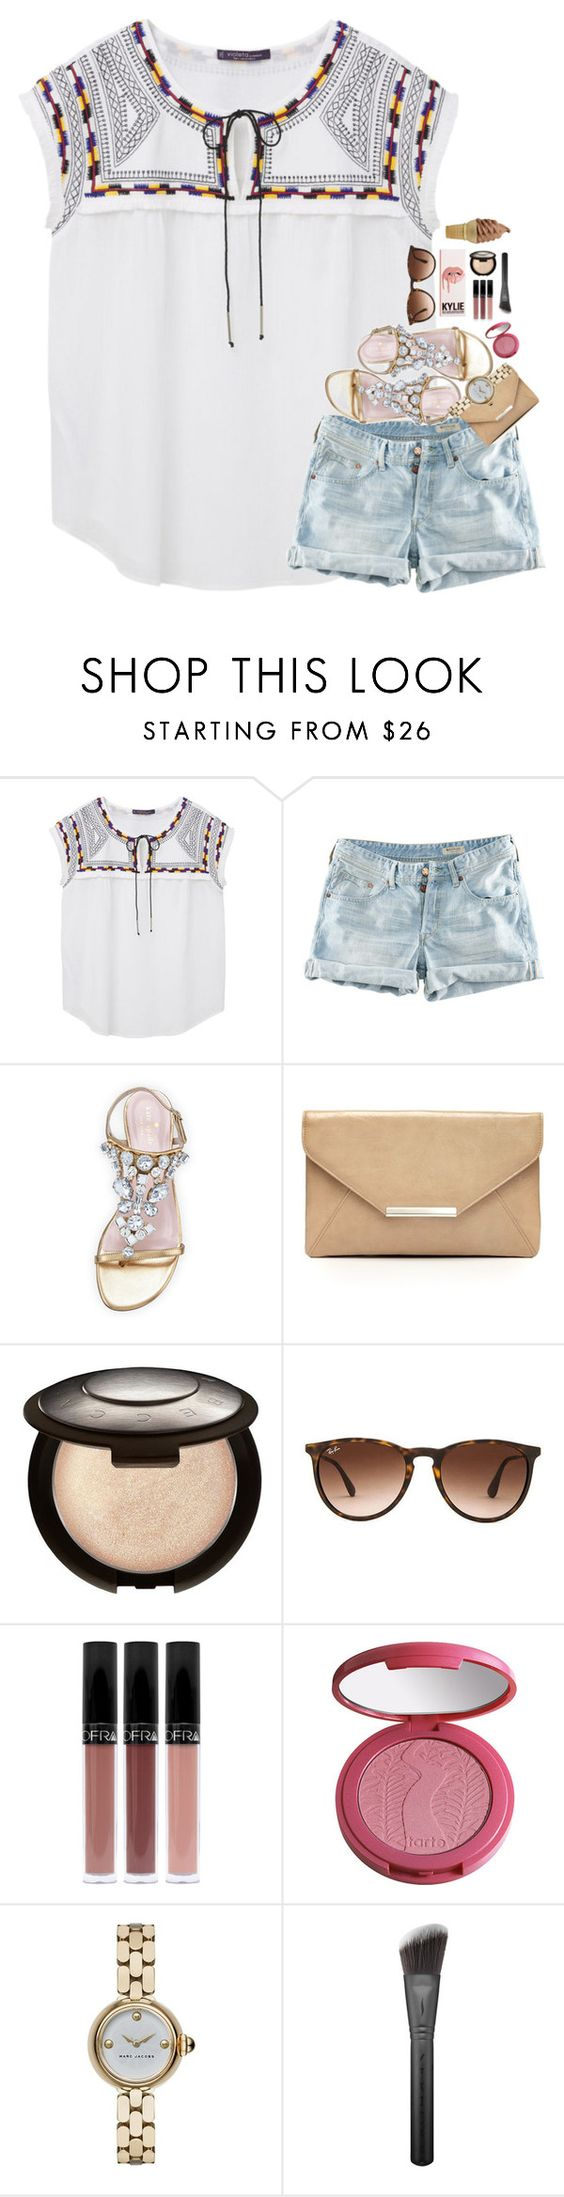 """won't be posting much for the next week..."" by sdyerrtx ❤ liked on Polyvore featuring Violeta by Mango, H&M, Kate Spade, Style & Co., Becca, Ray-Ban, tarte, Marc Jacobs and Sephora Collection"